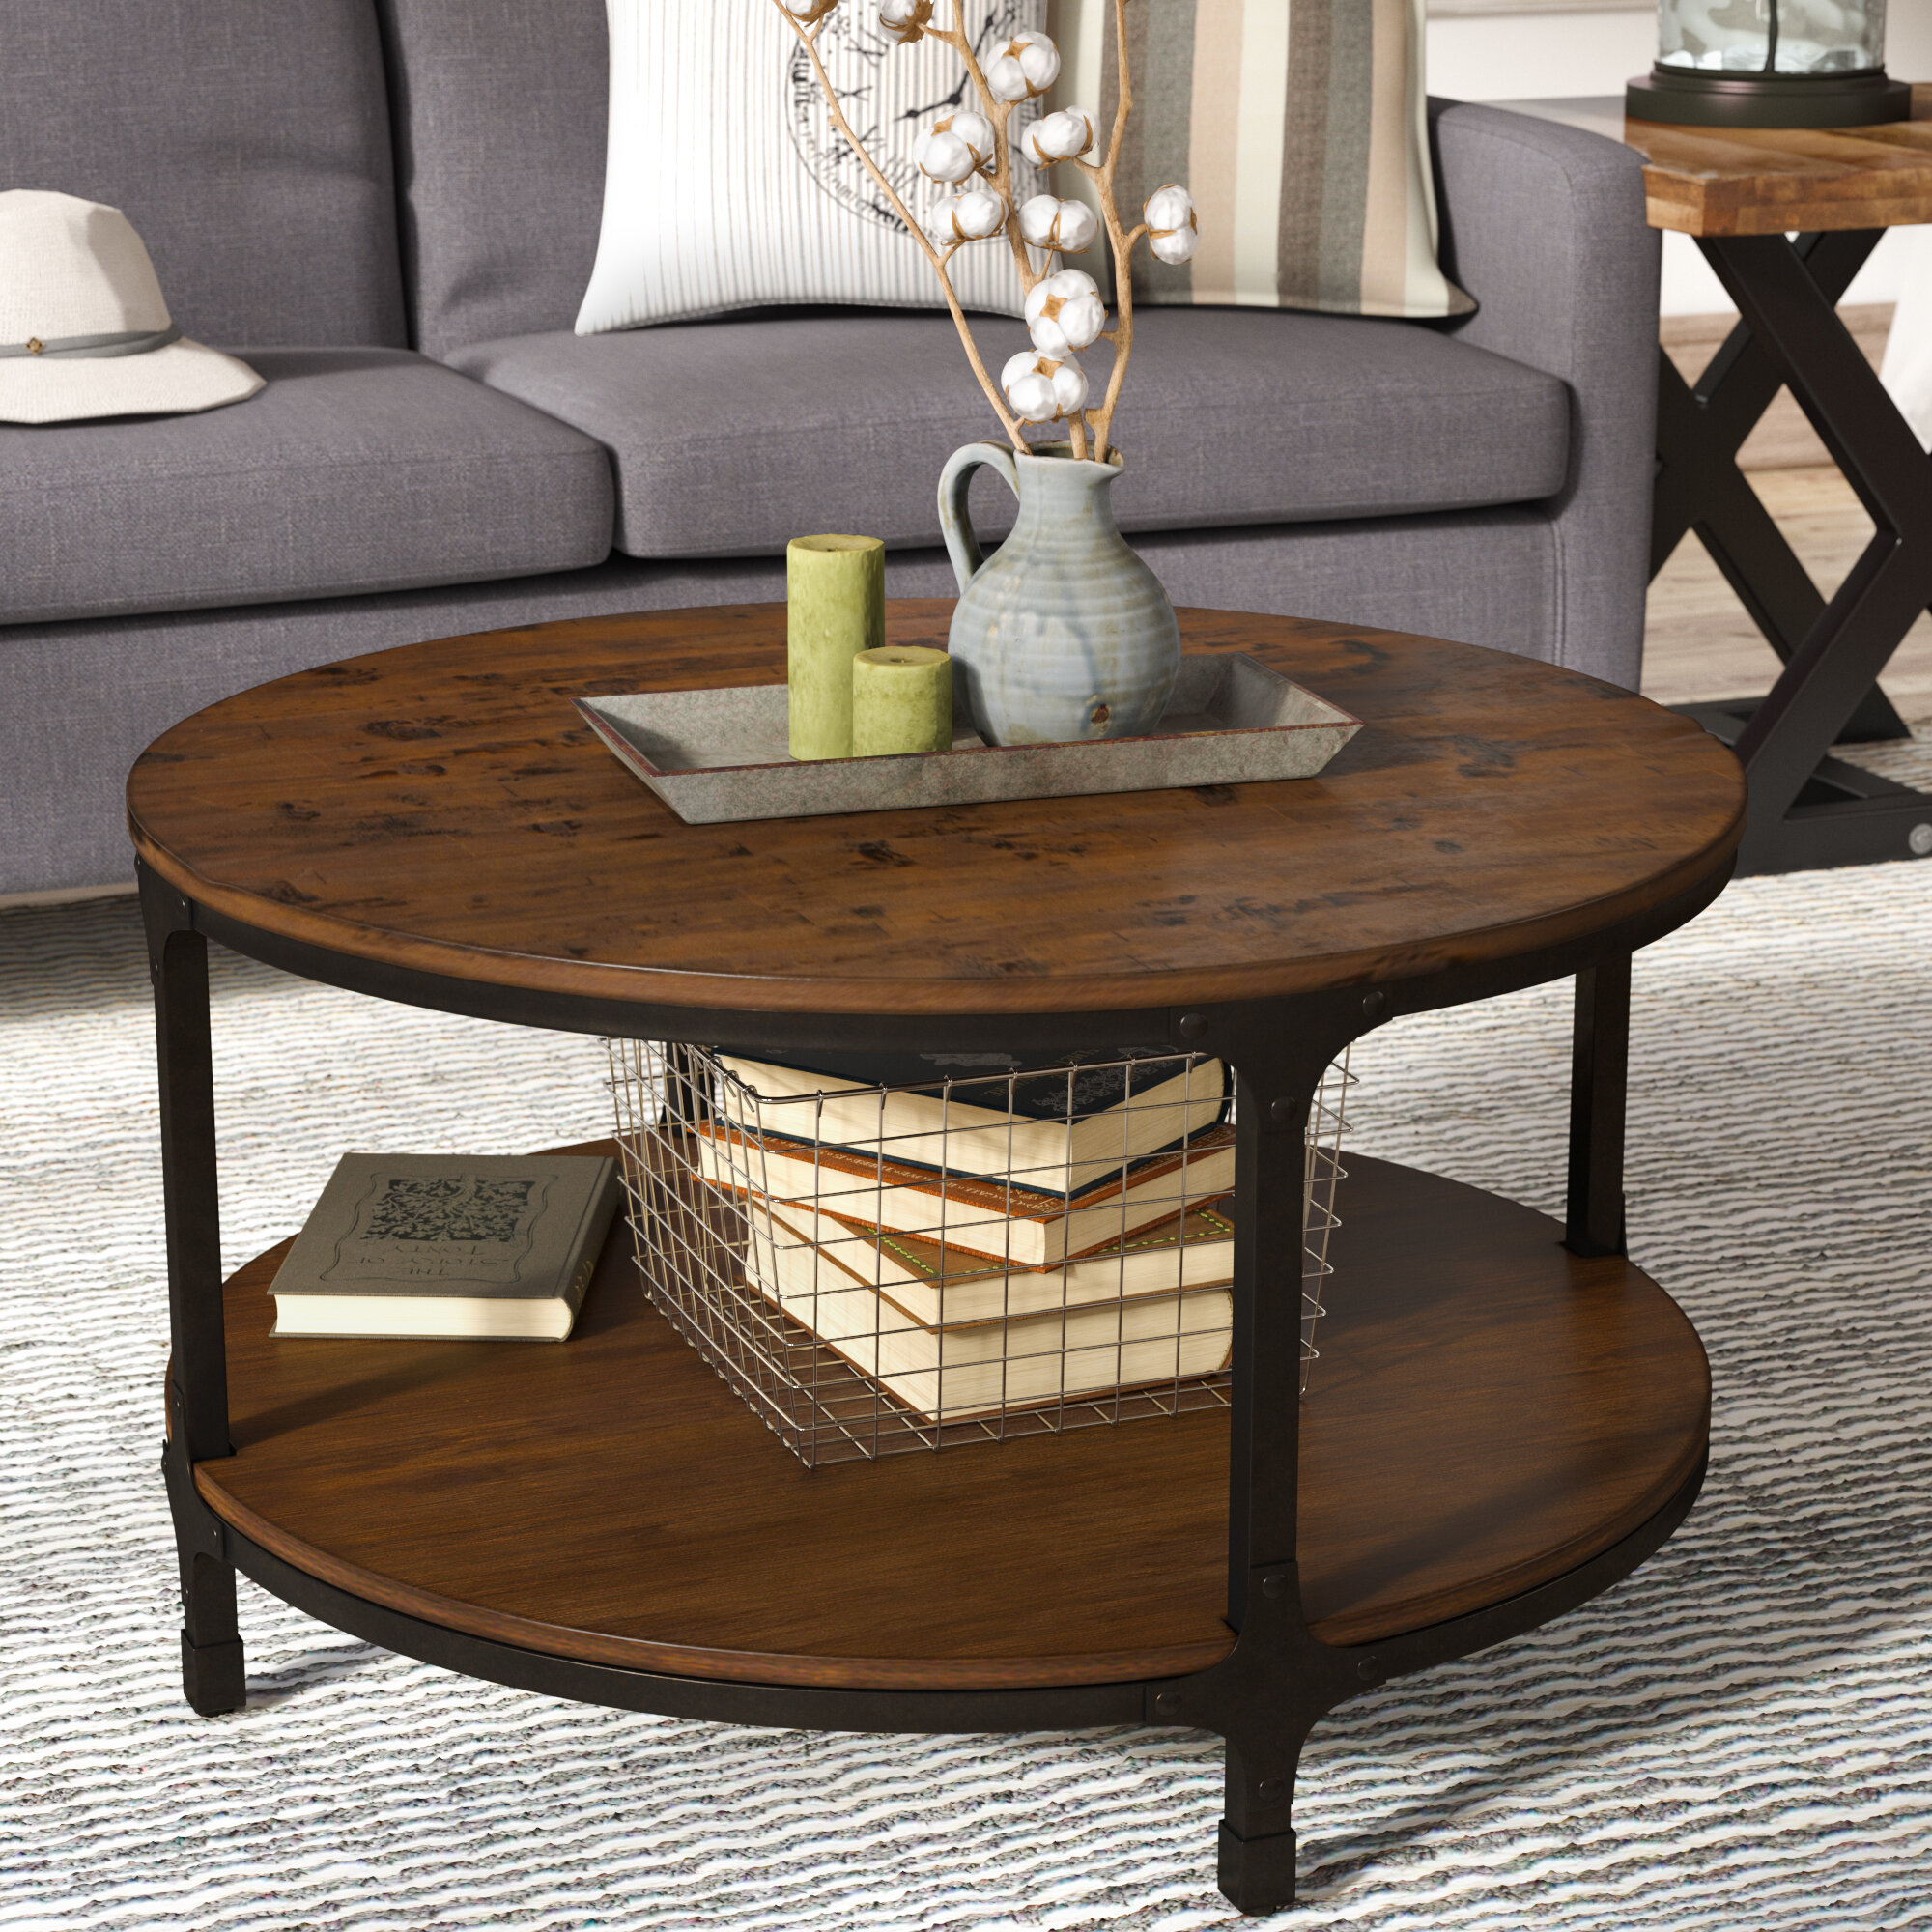 Round Coffee Table Images 1